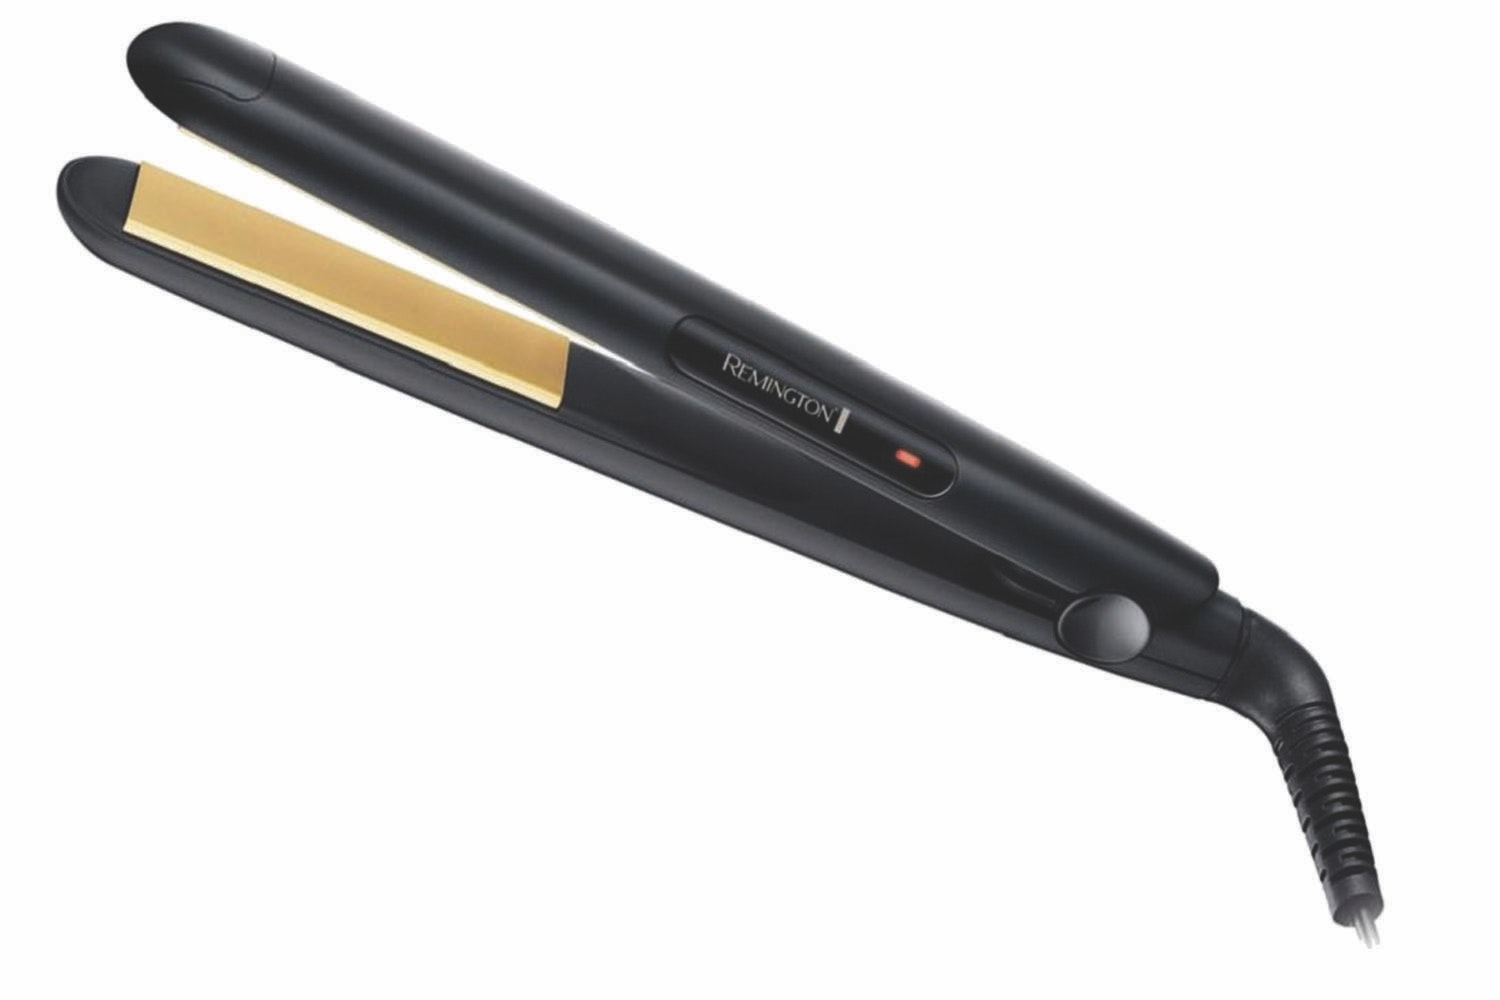 Remington Ceramic 210 Hair Straightener | S1400